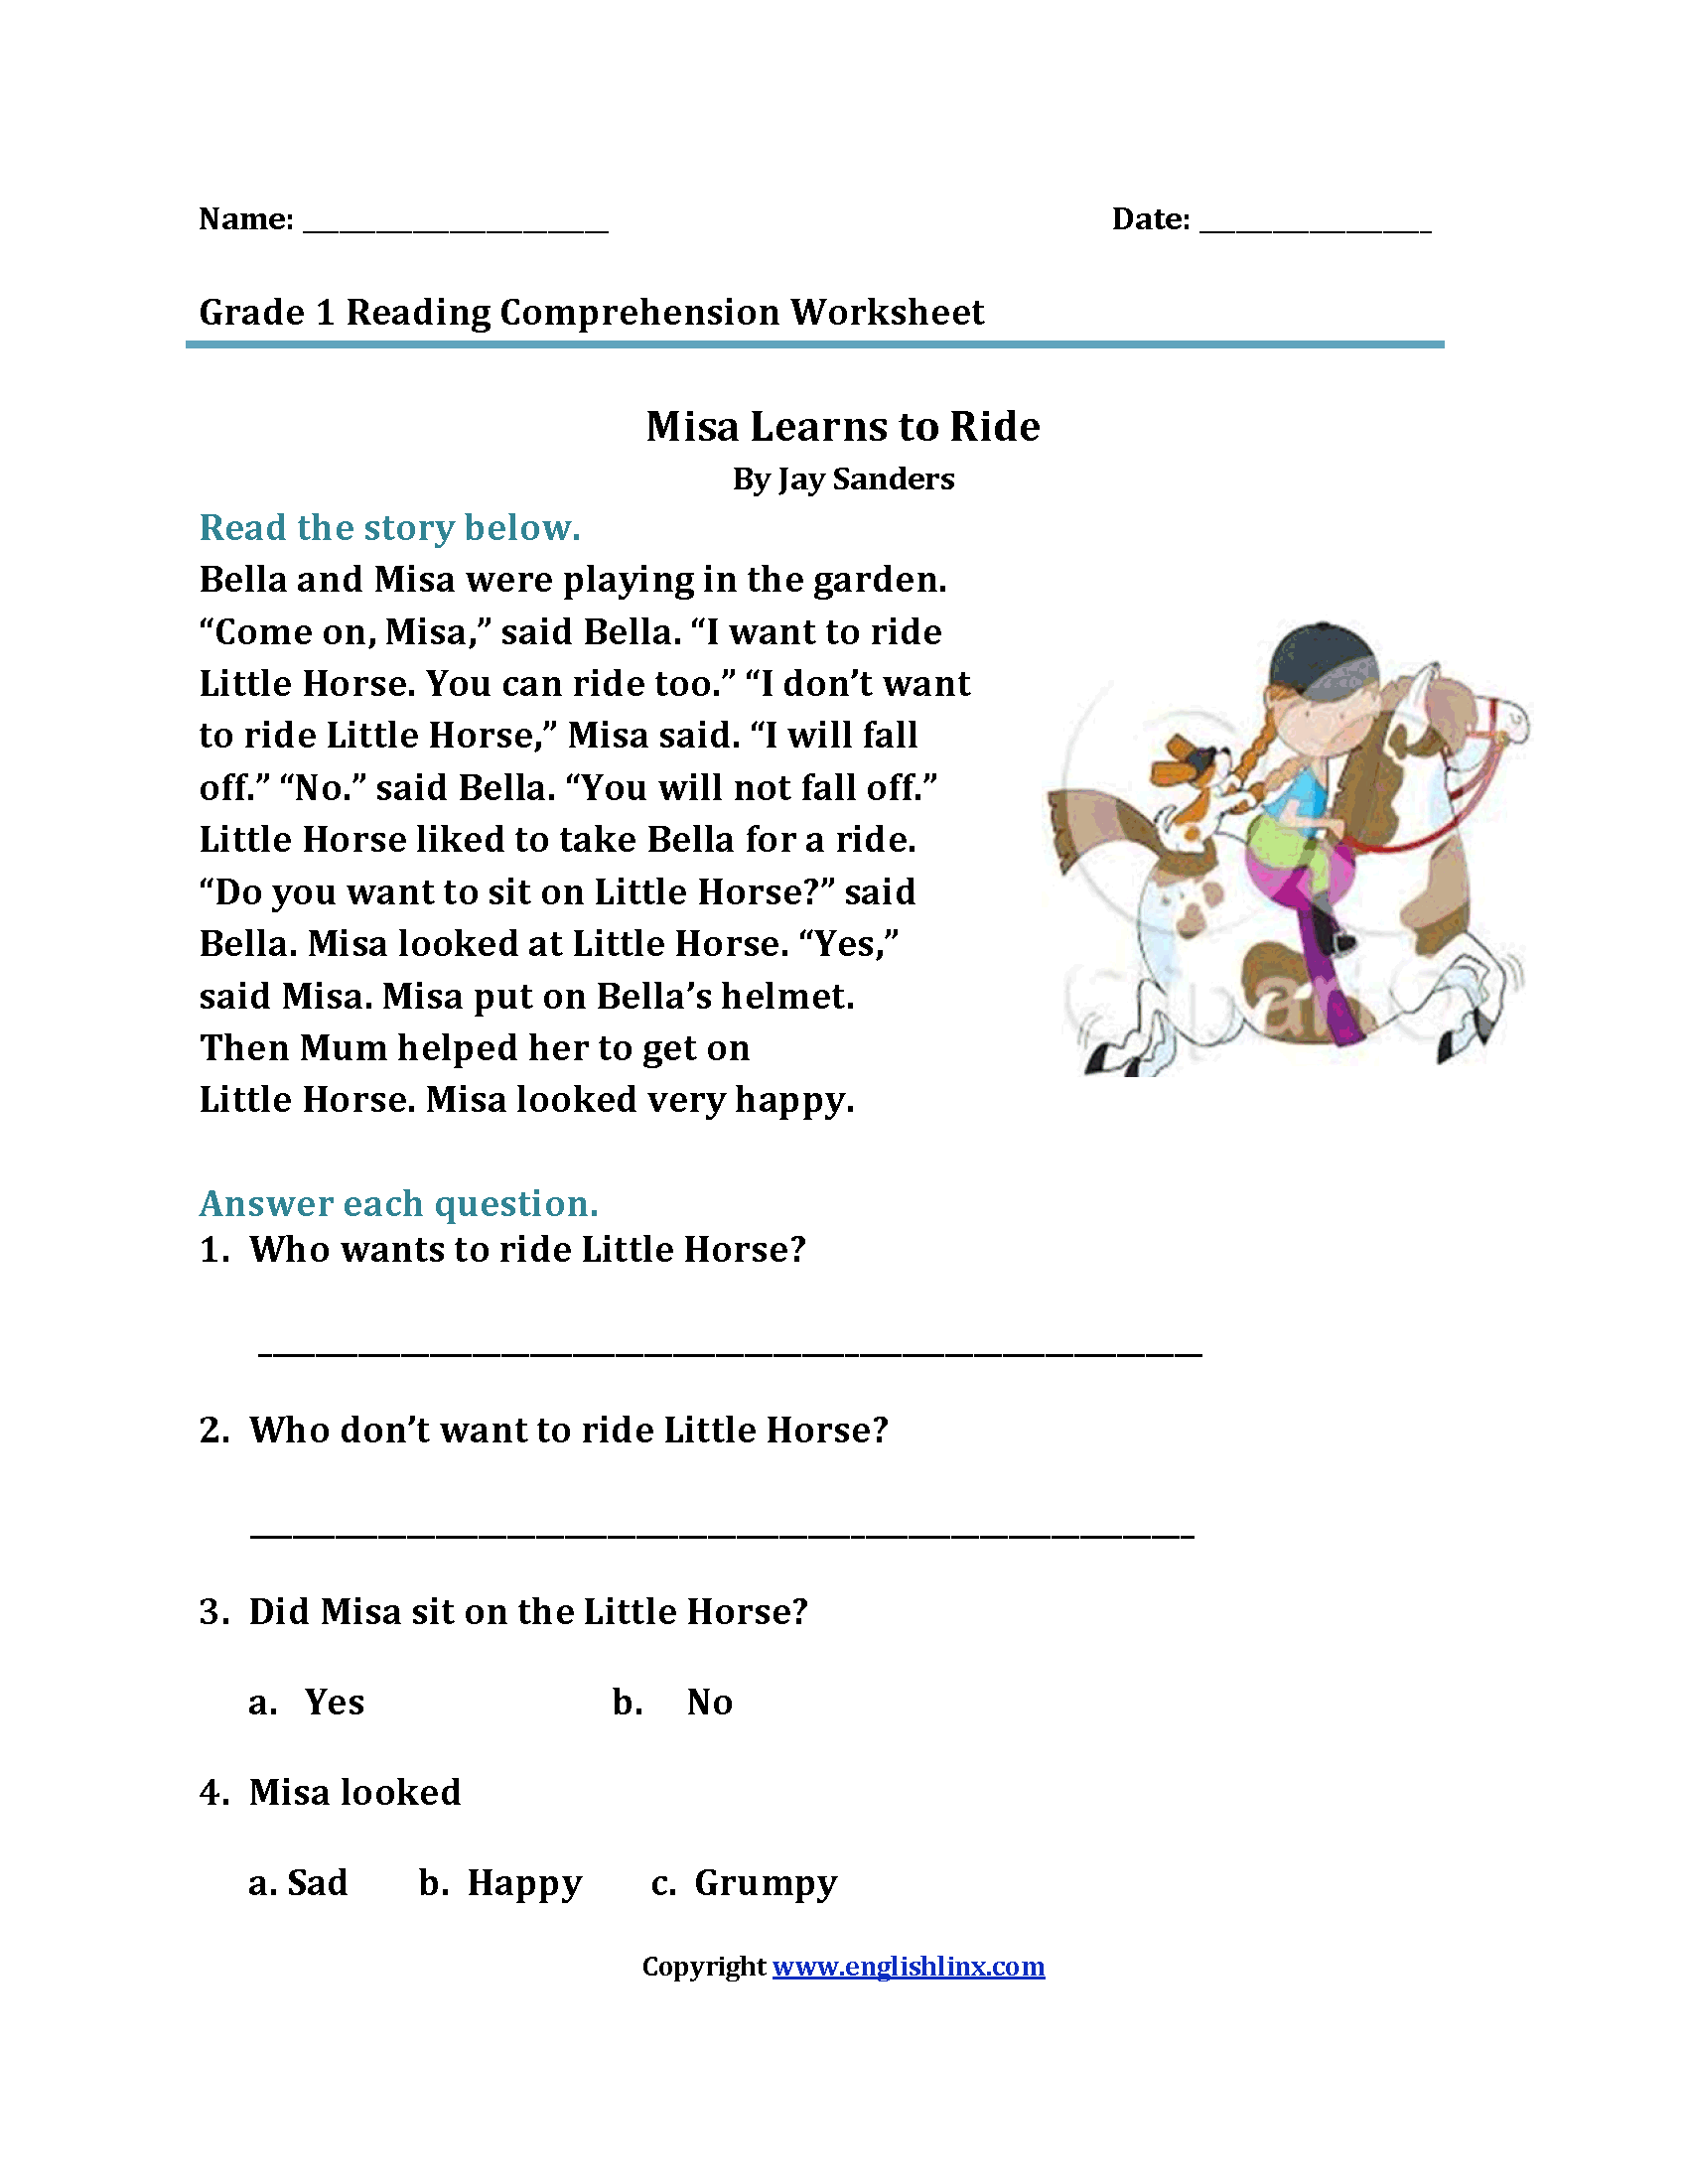 worksheet First Grade Reading Comprehension Worksheet reading worksheets first grade worksheets